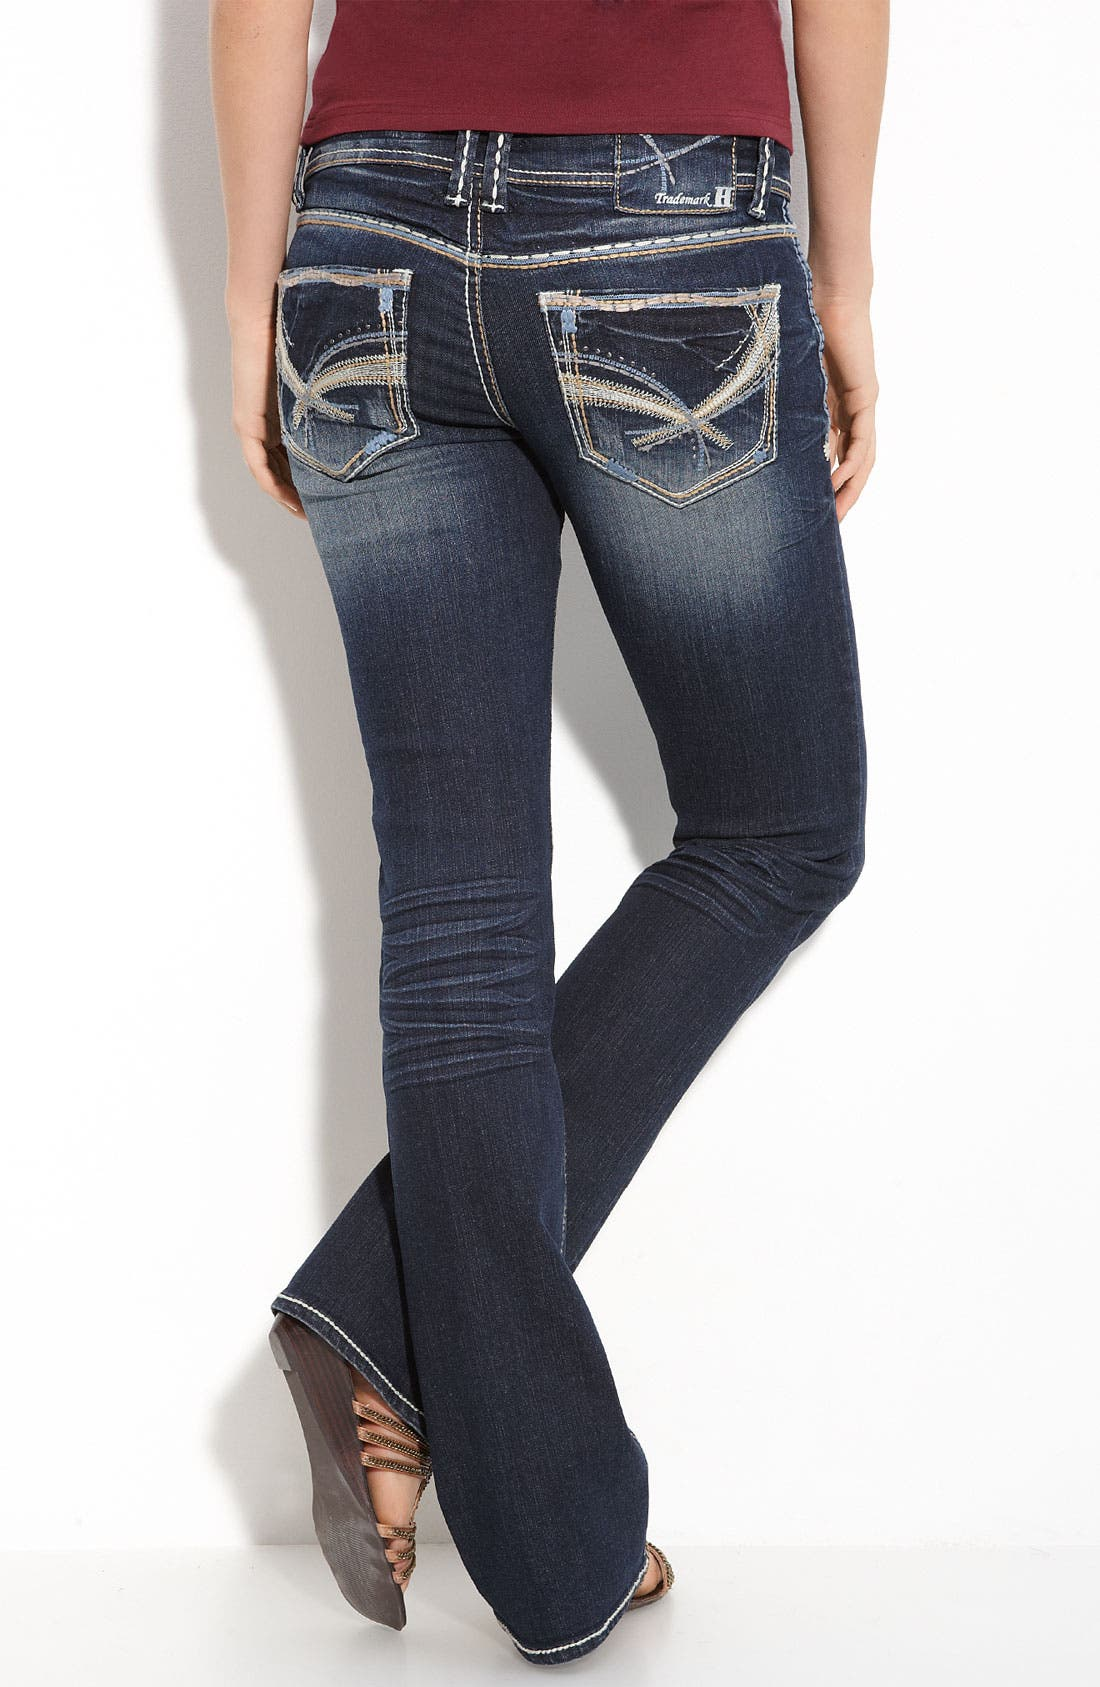 Alternate Image 1 Selected - Trademark H Slim Bootcut Jeans (Blue Wash) (Juniors)